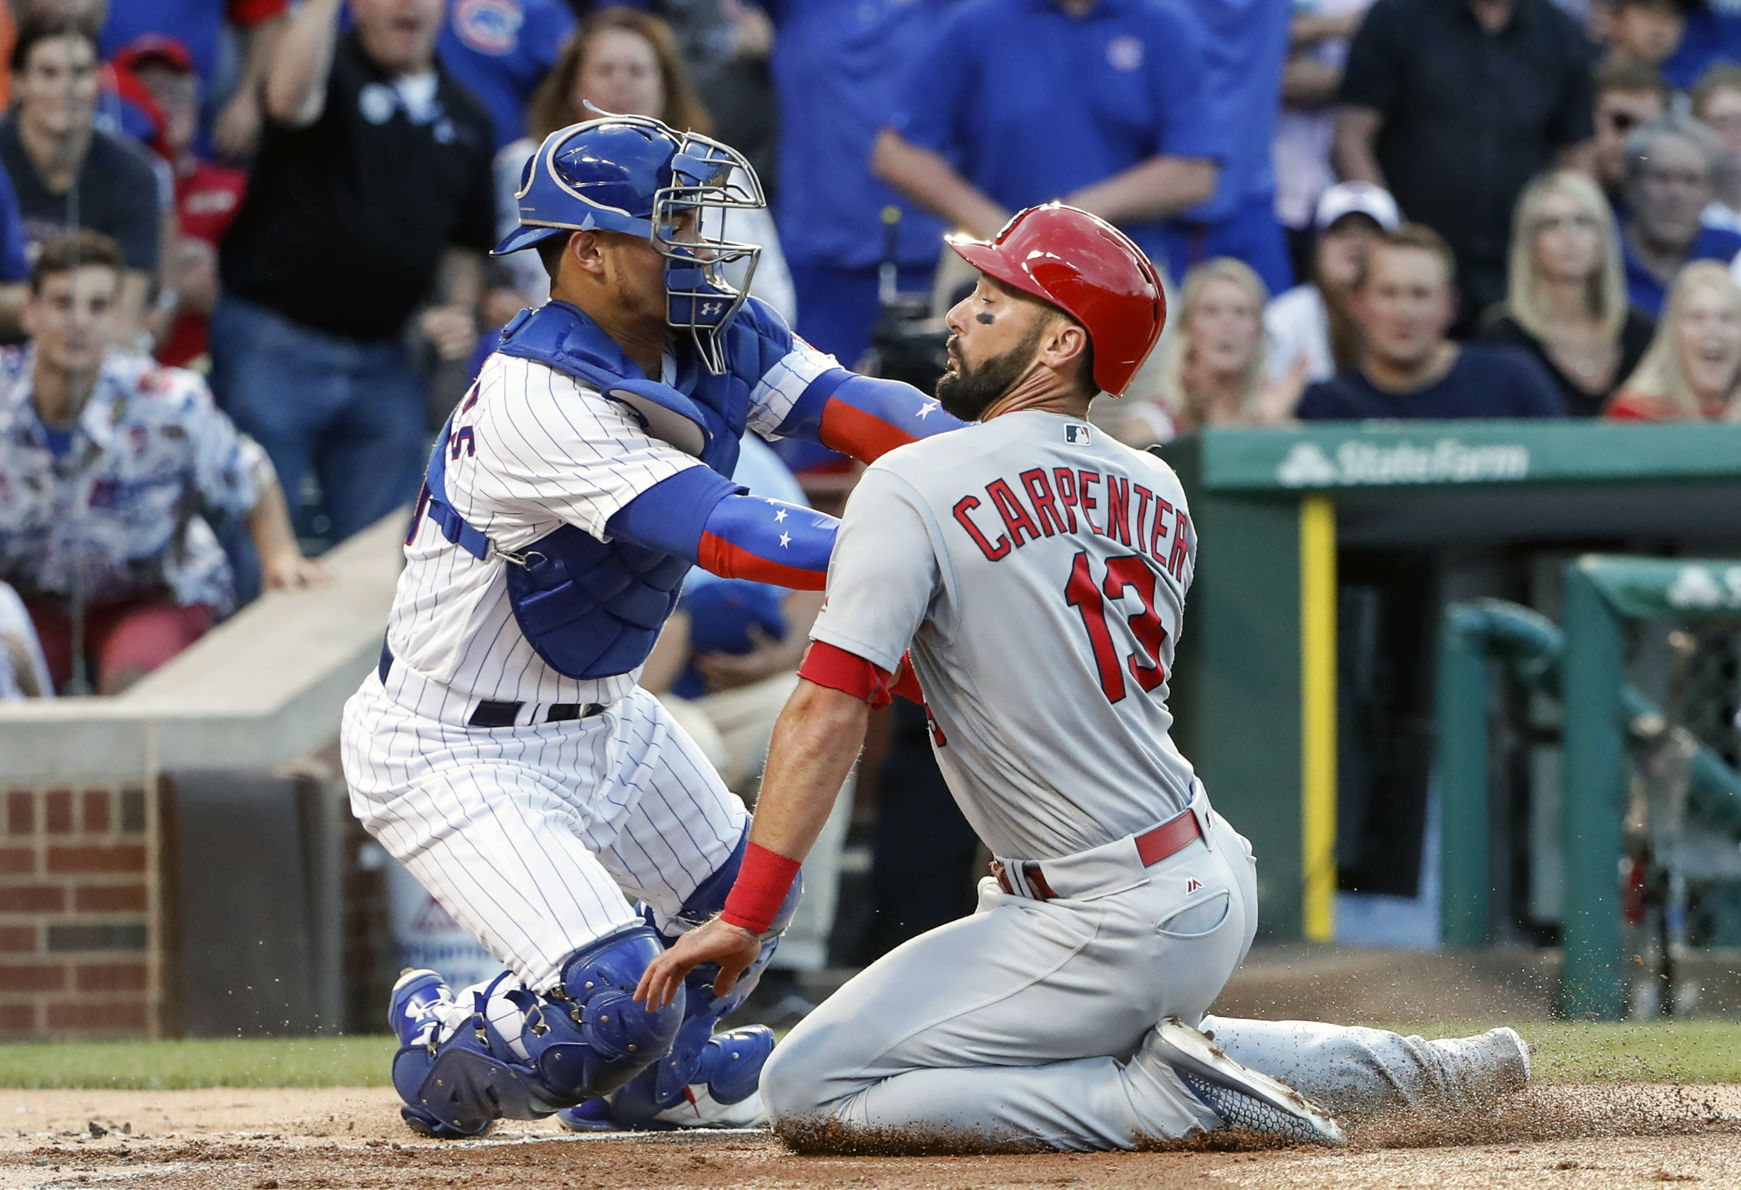 Contreras home run gives Cubs series over Cardinals, division lead